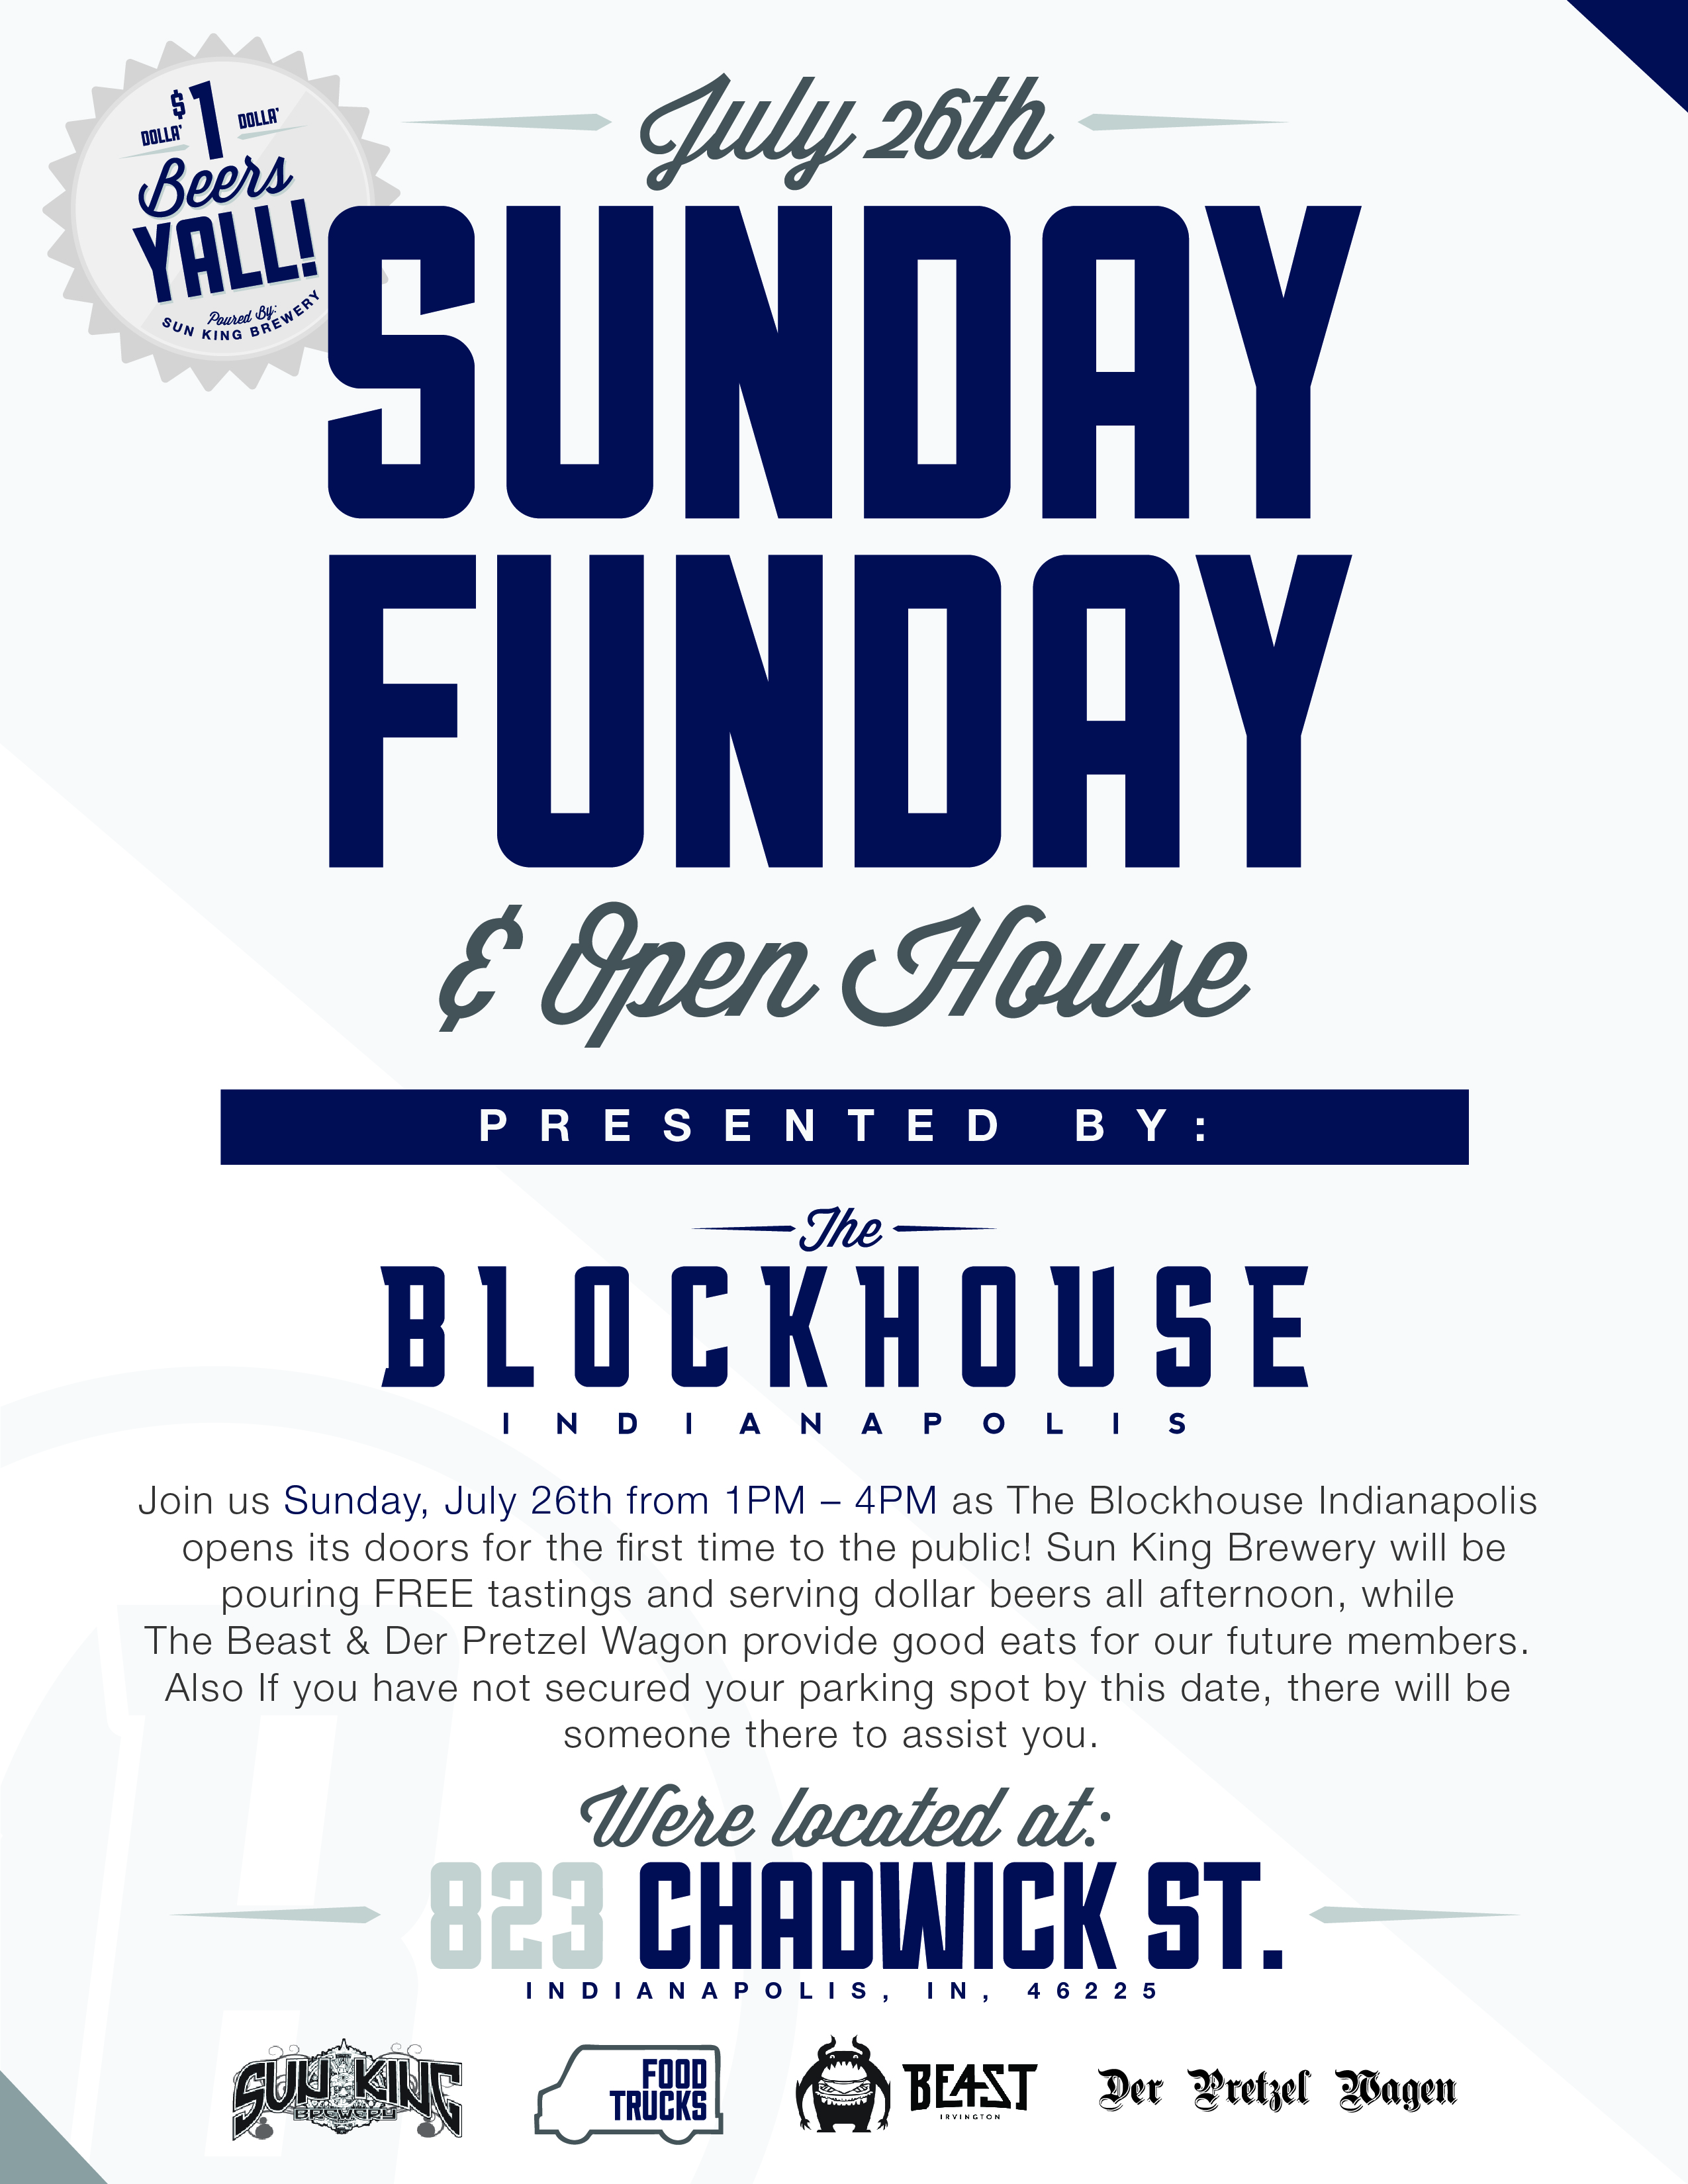 THE BLOCKHOUSE INDY - SUNDAY FUNDAY